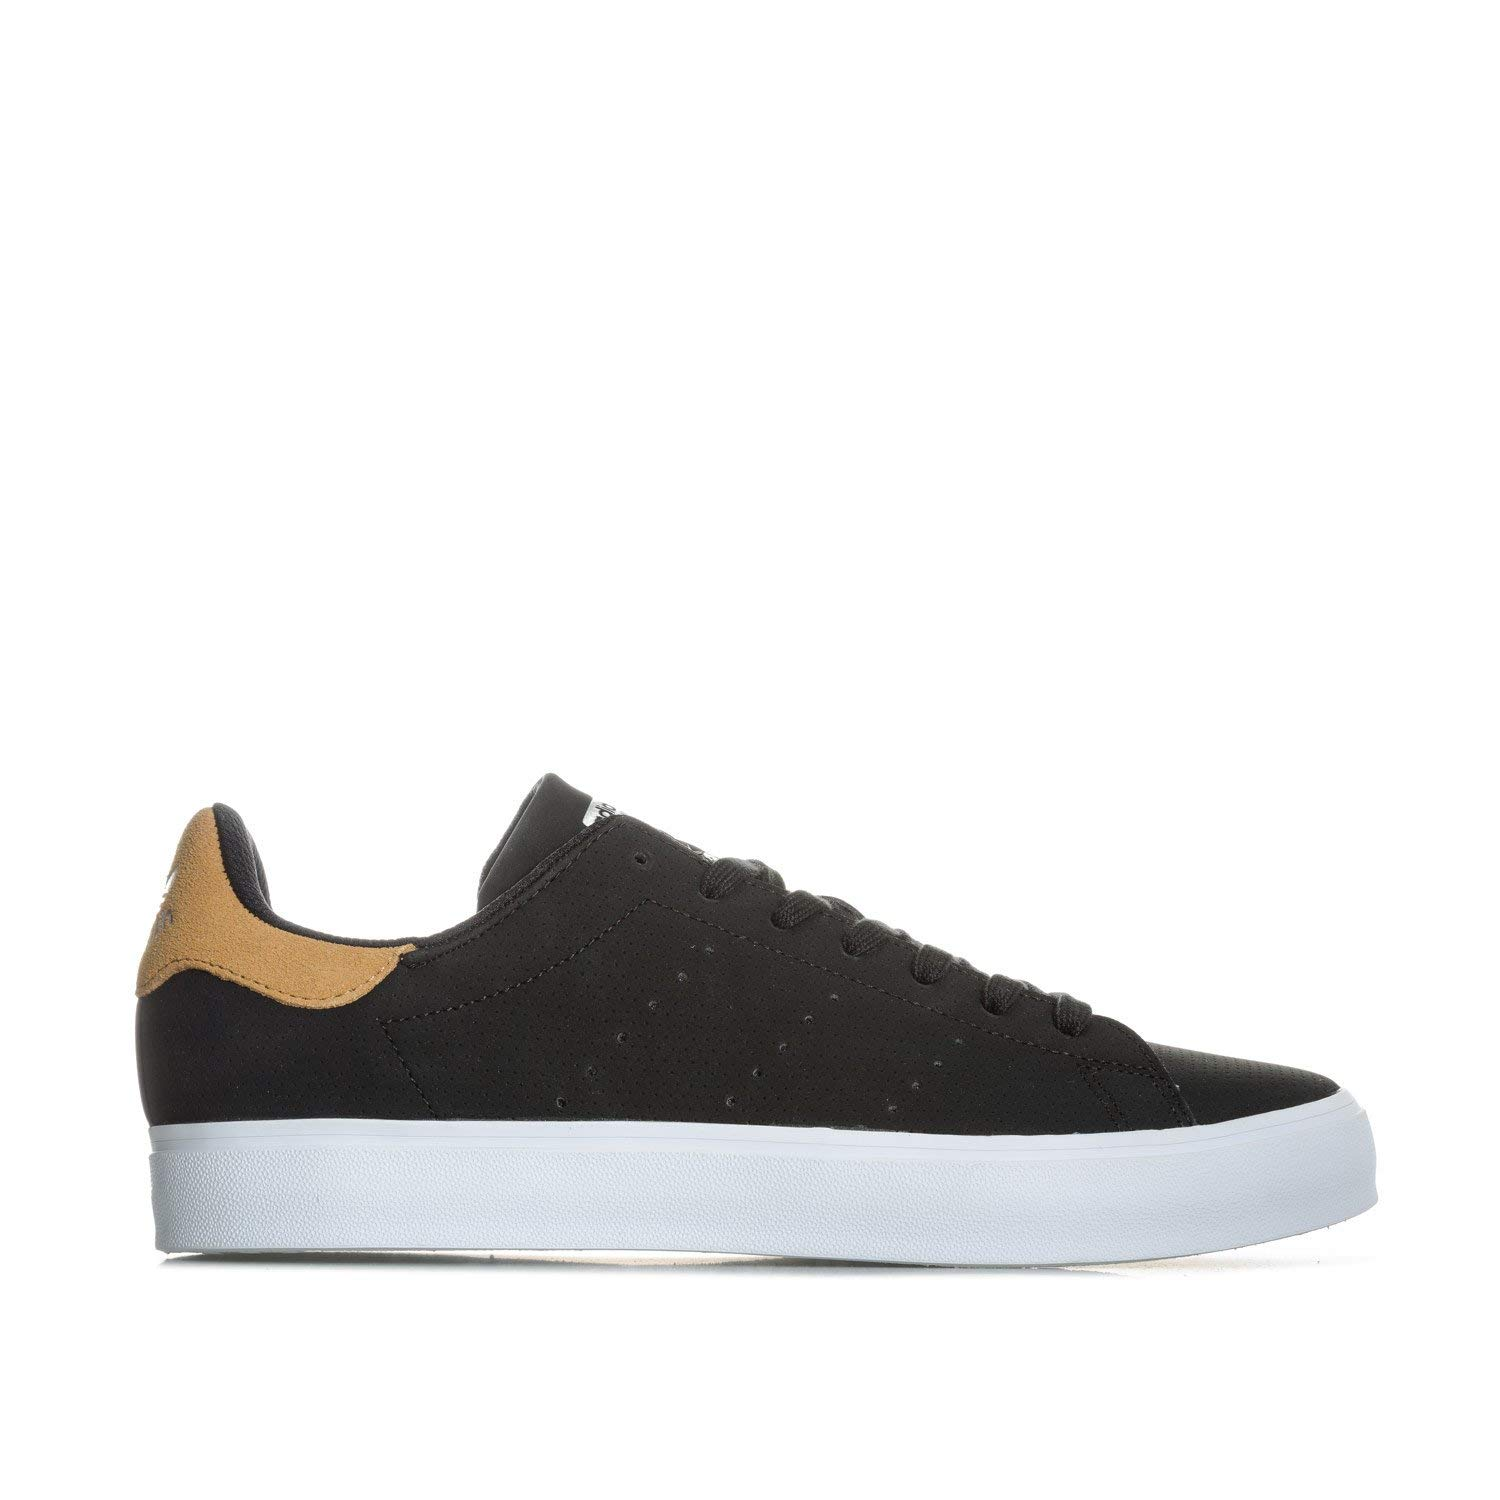 5ab06b154 Get Quotations · adidas Originals Men's Stan Smith Vulc Trainers Core  Footwear US10 Black